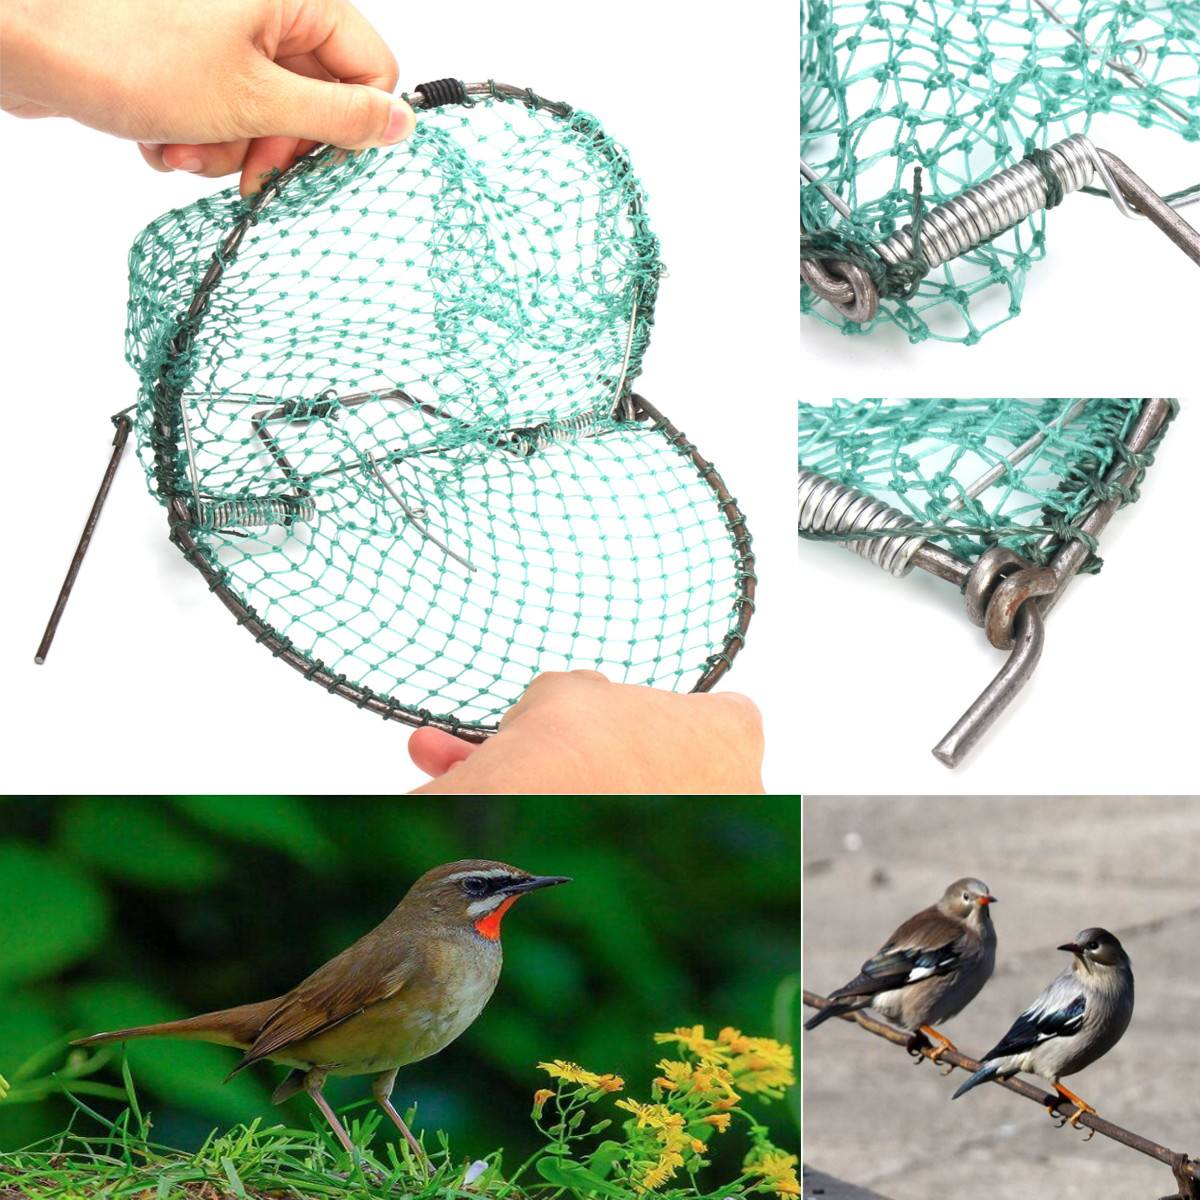 20cm Heavy Duty Bird Net Effective Humane Live Trap Hunting Sensitive Quail Humane Trapping Hunting Garden Supplies Pest Control